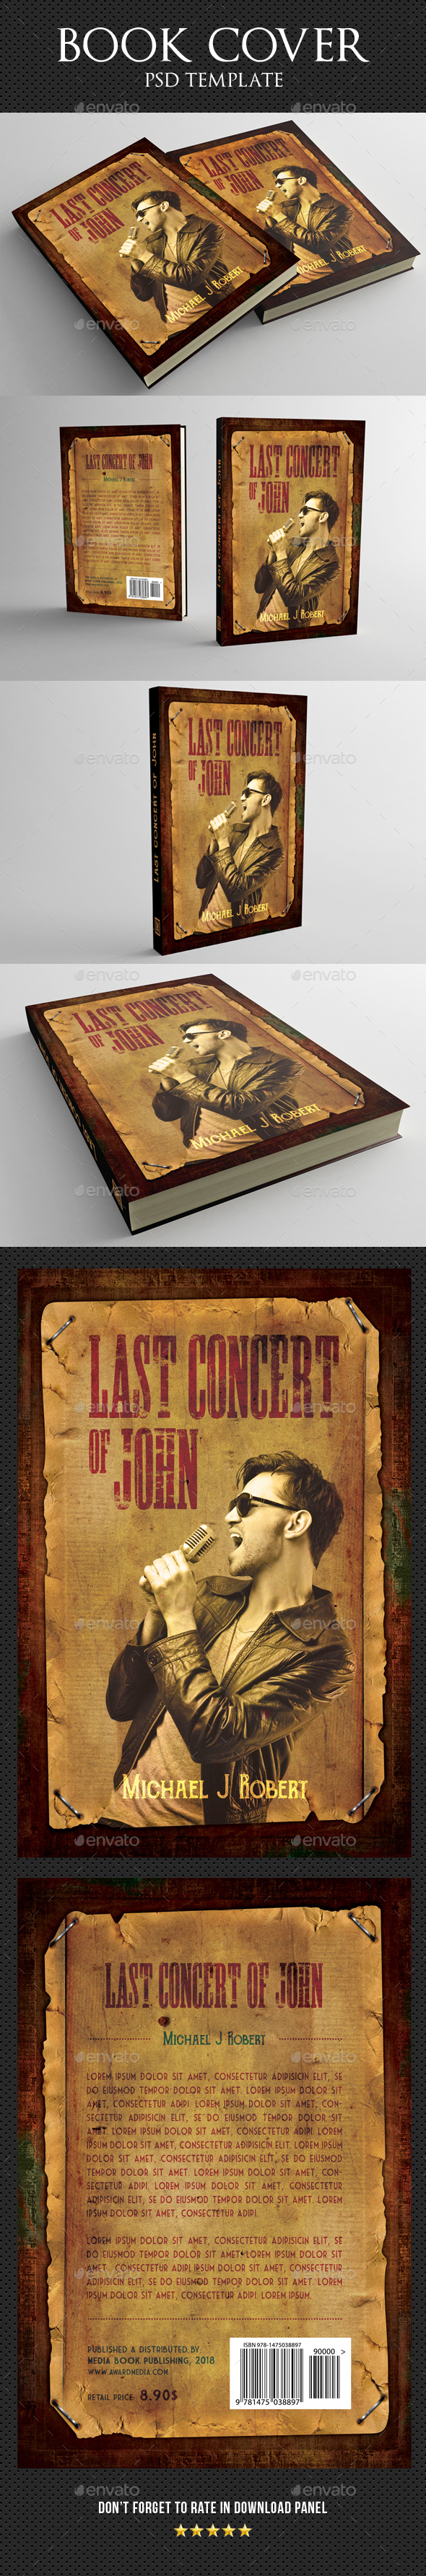 Book Cover Template 42 - Miscellaneous Print Templates